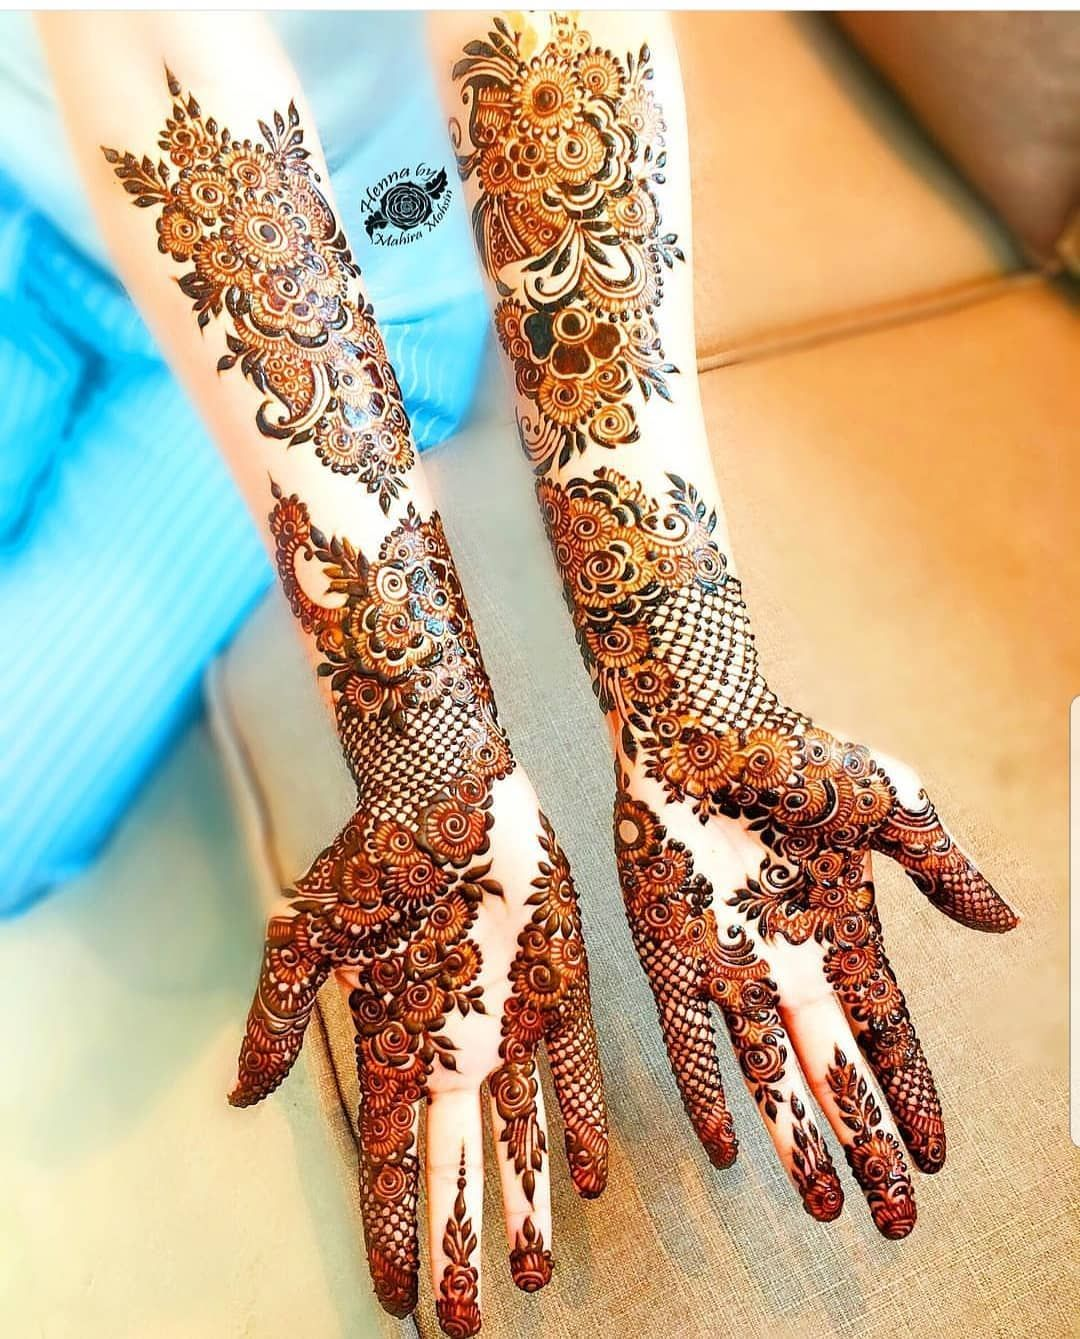 Image May Contain 1 Person Henna Designs Mehndi Designs Mehndi